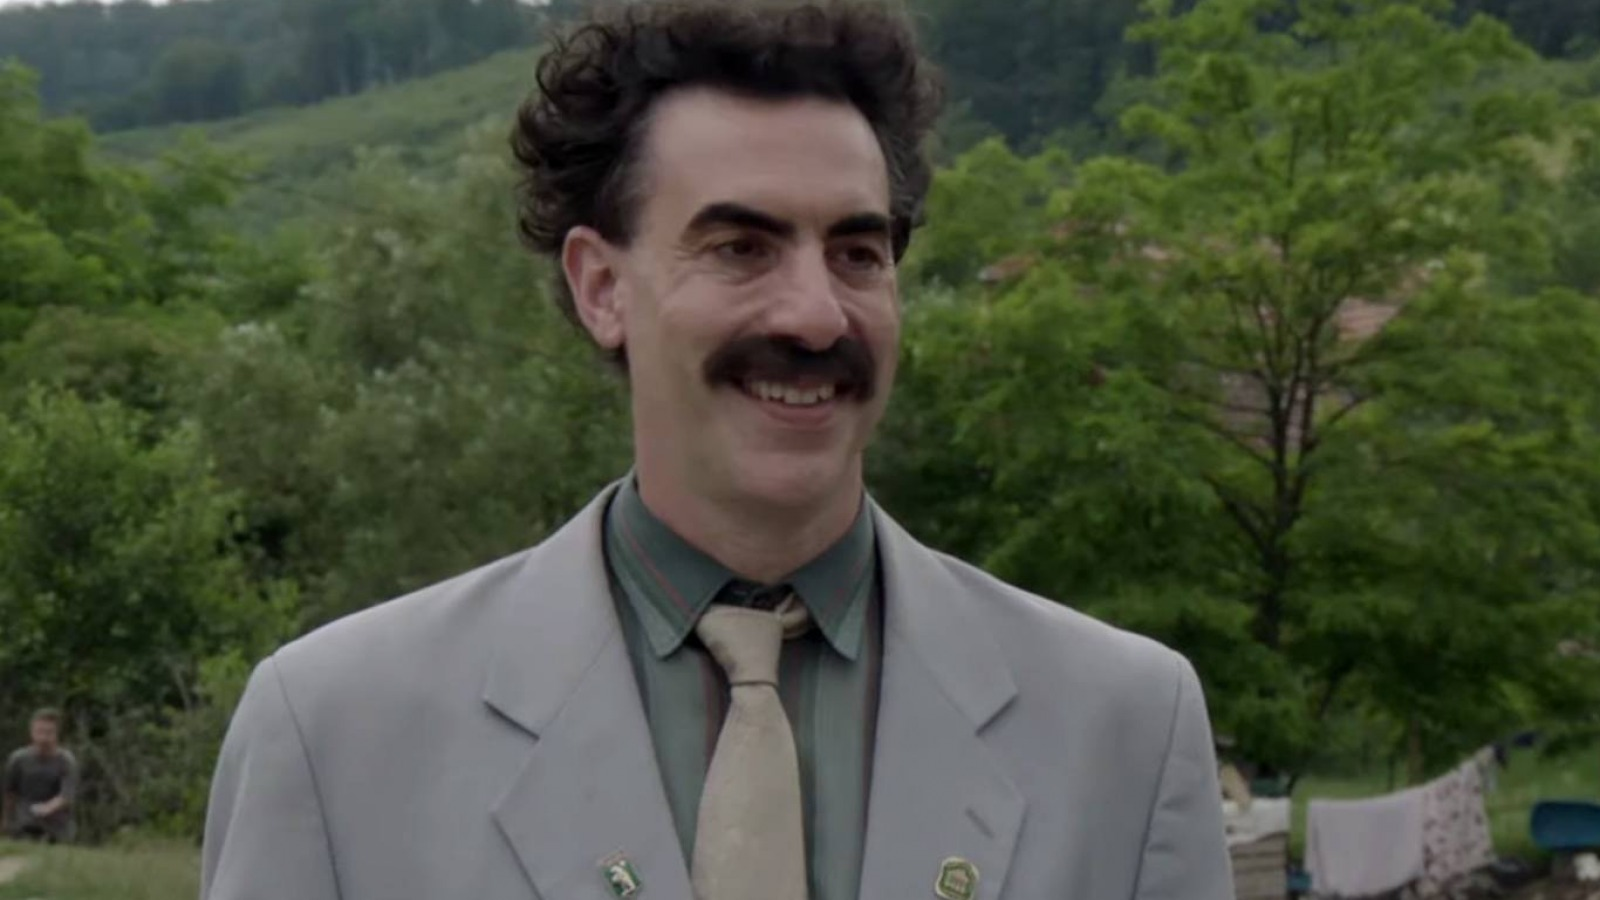 The wild full-length trailer for Borat 2 is here